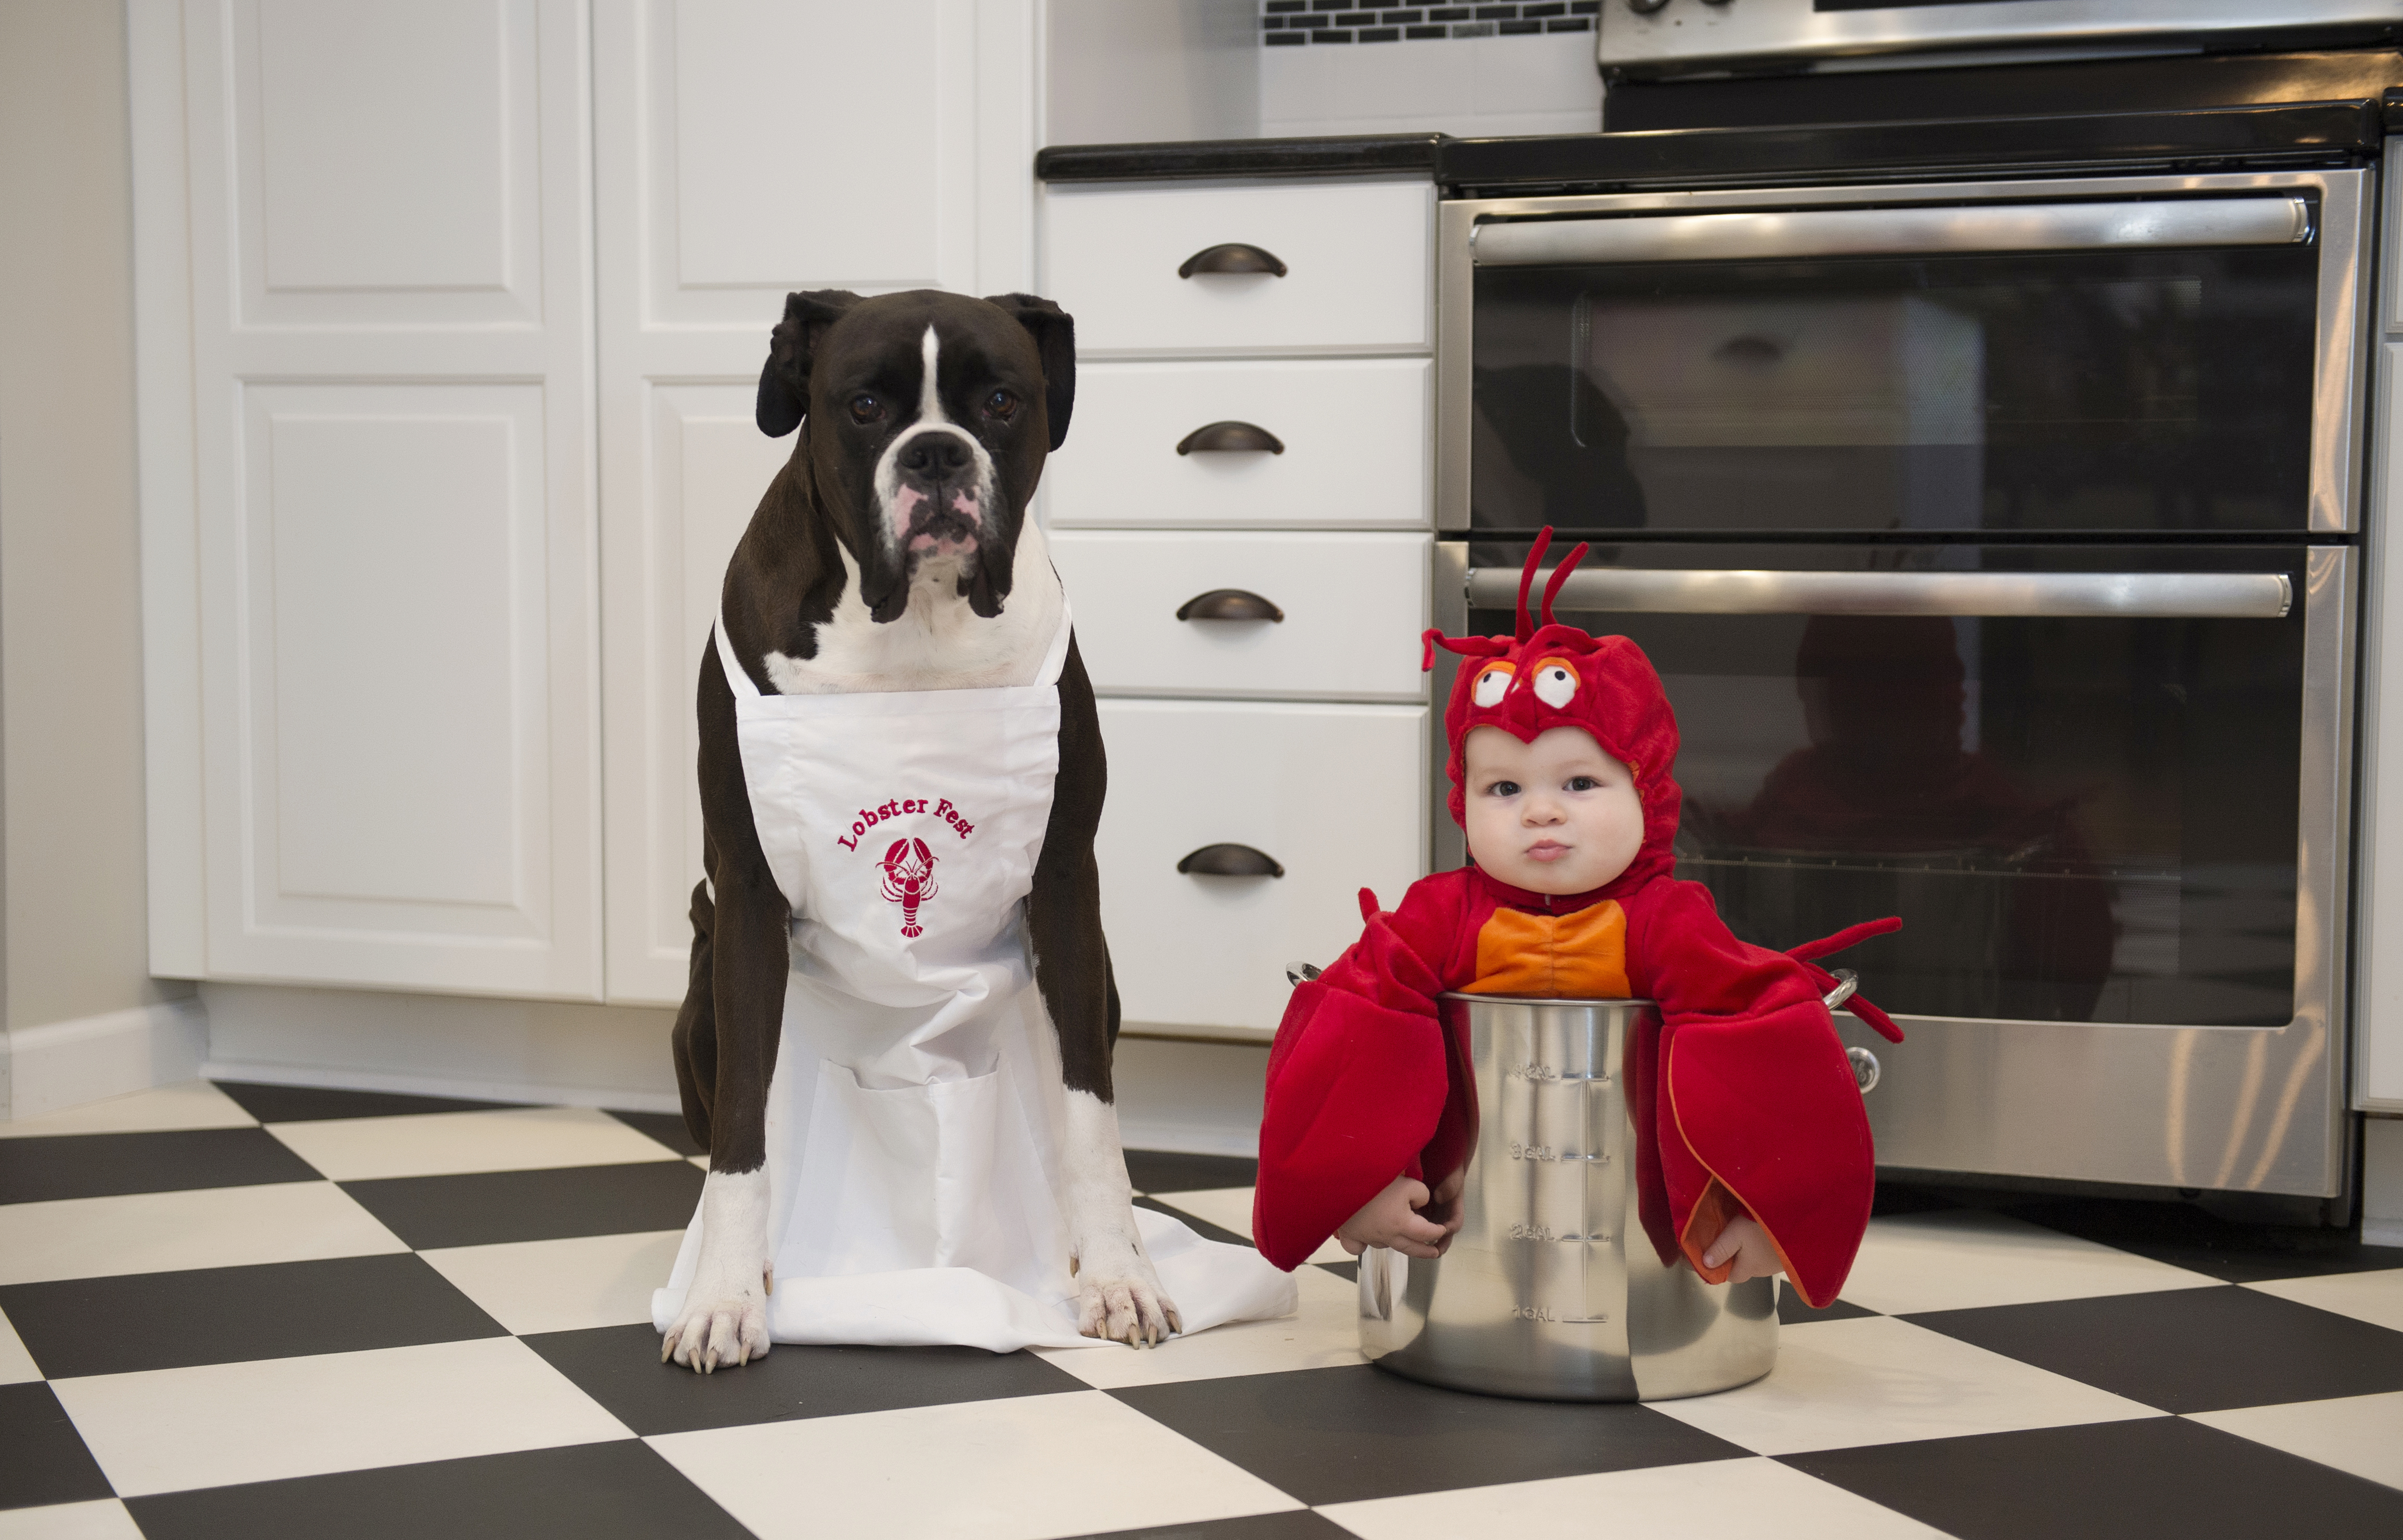 FFW_10-22-15_dog-and-kid-costumes2